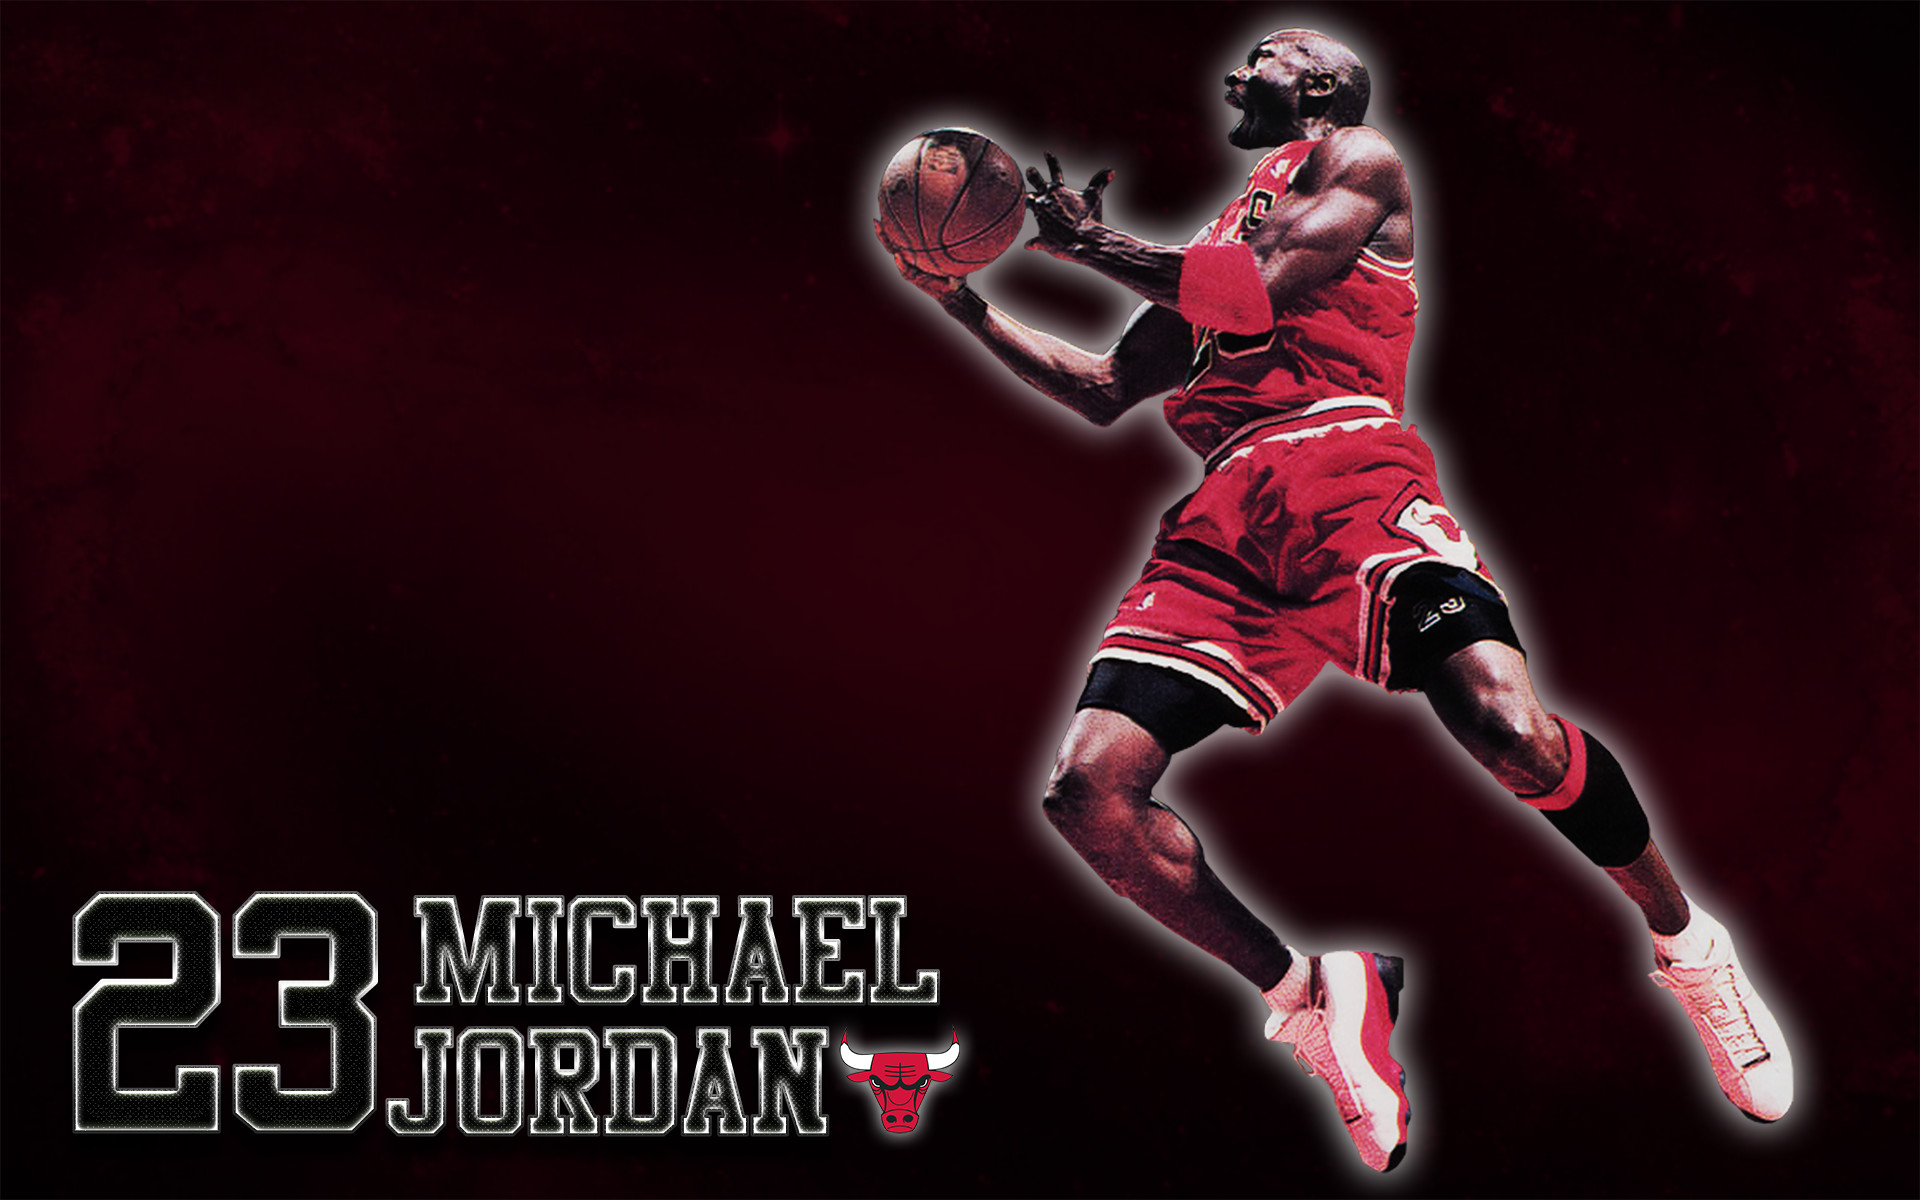 Awesome Chicago Bulls wallpaper   Chicago Bulls wallpapers